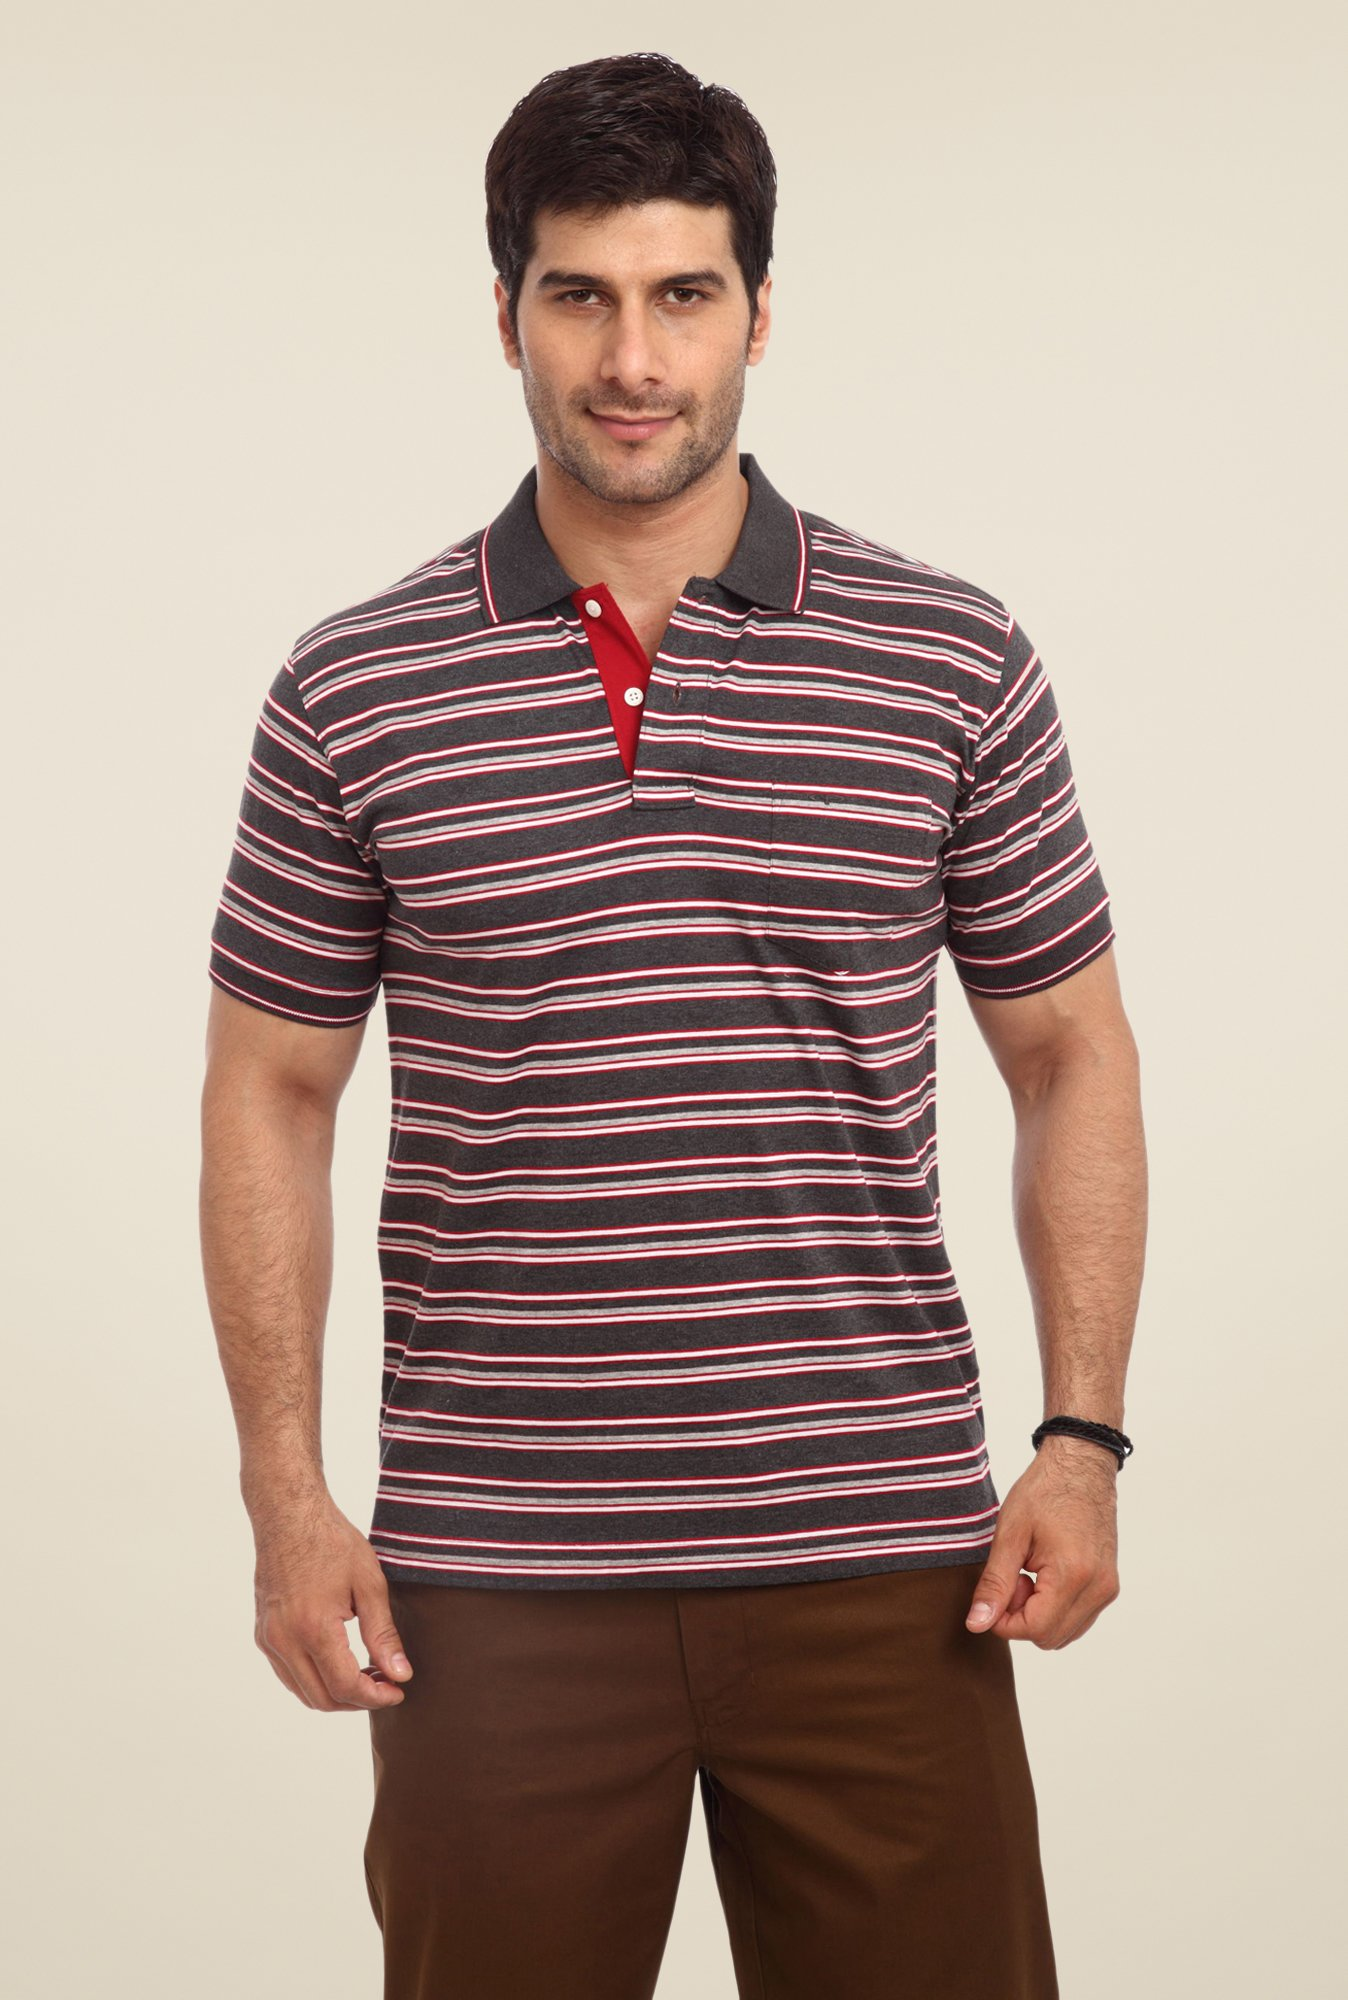 ColorPlus Grey Striped Polo T Shirt